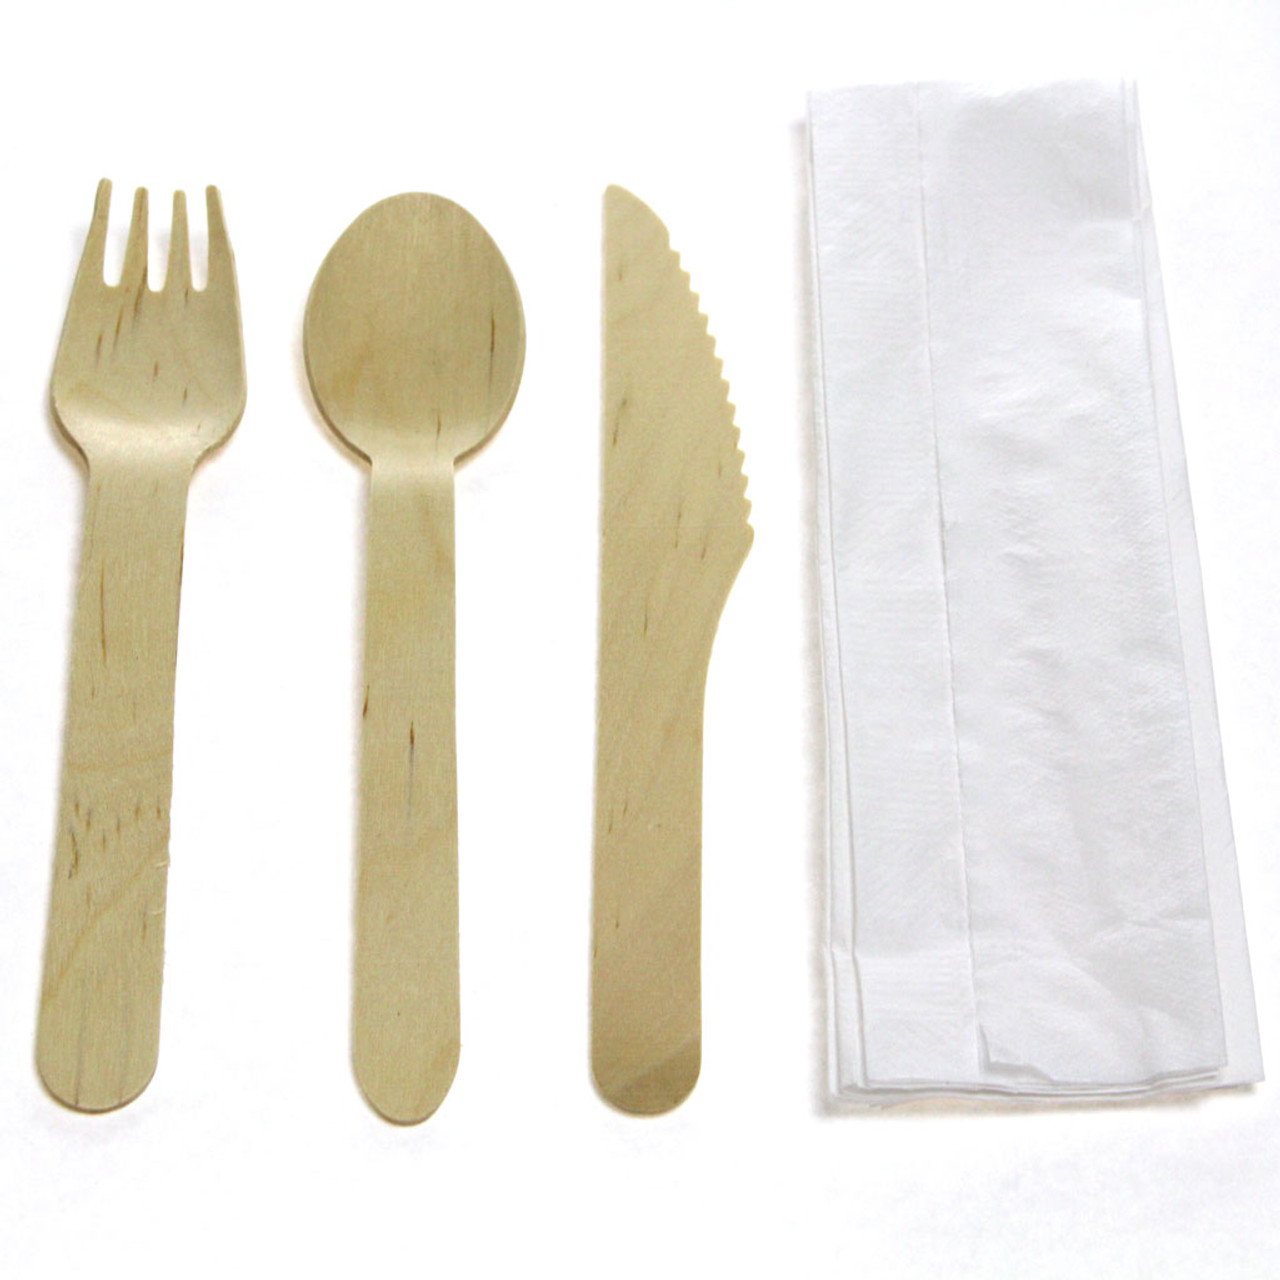 Wooden Cutlery Kit with Napkin